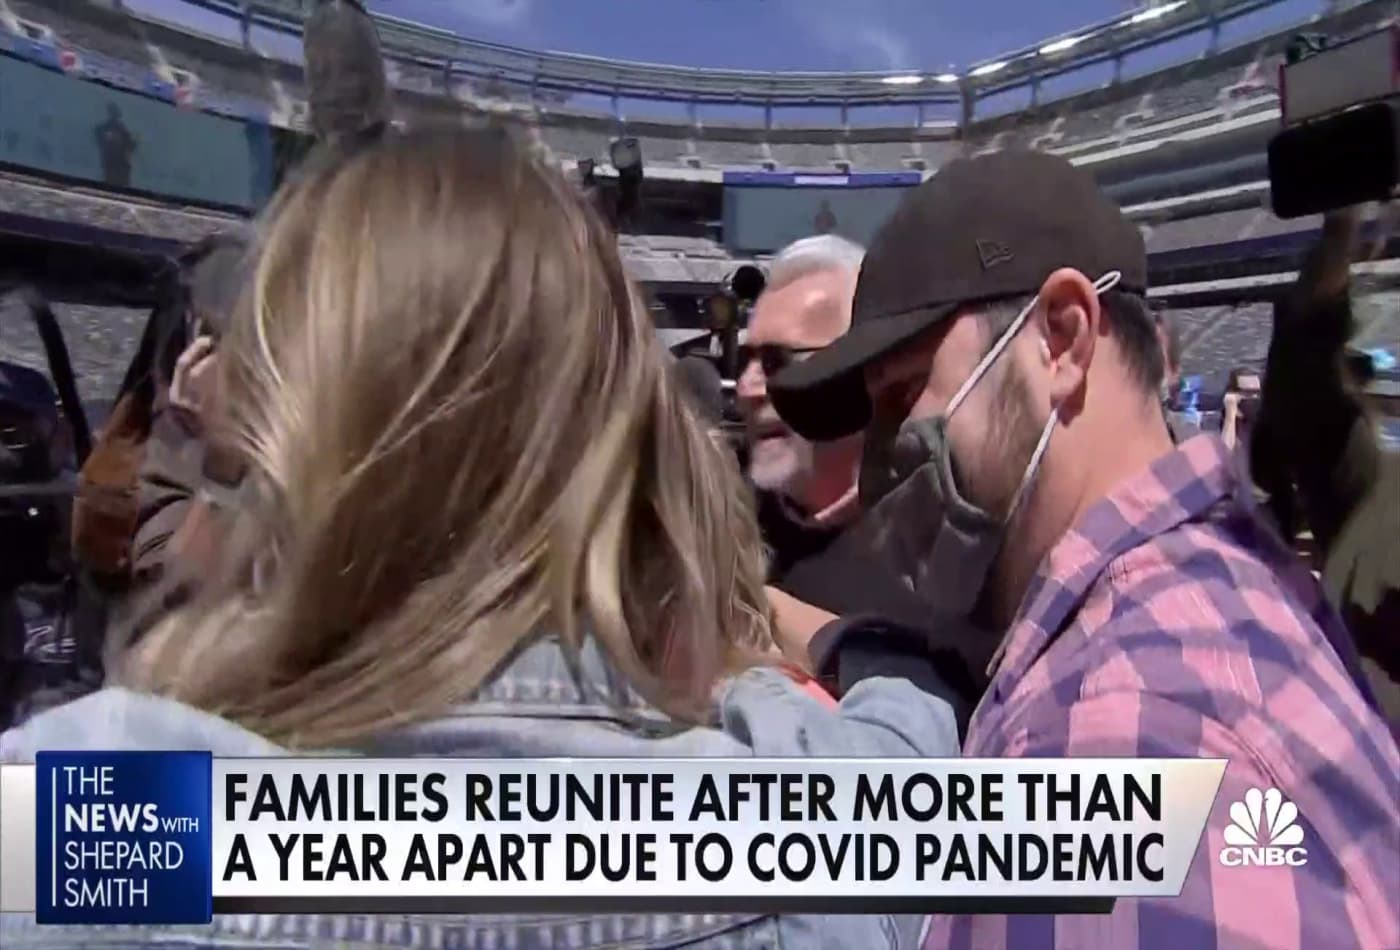 Families reunite after more than a year due to Covid pandemic